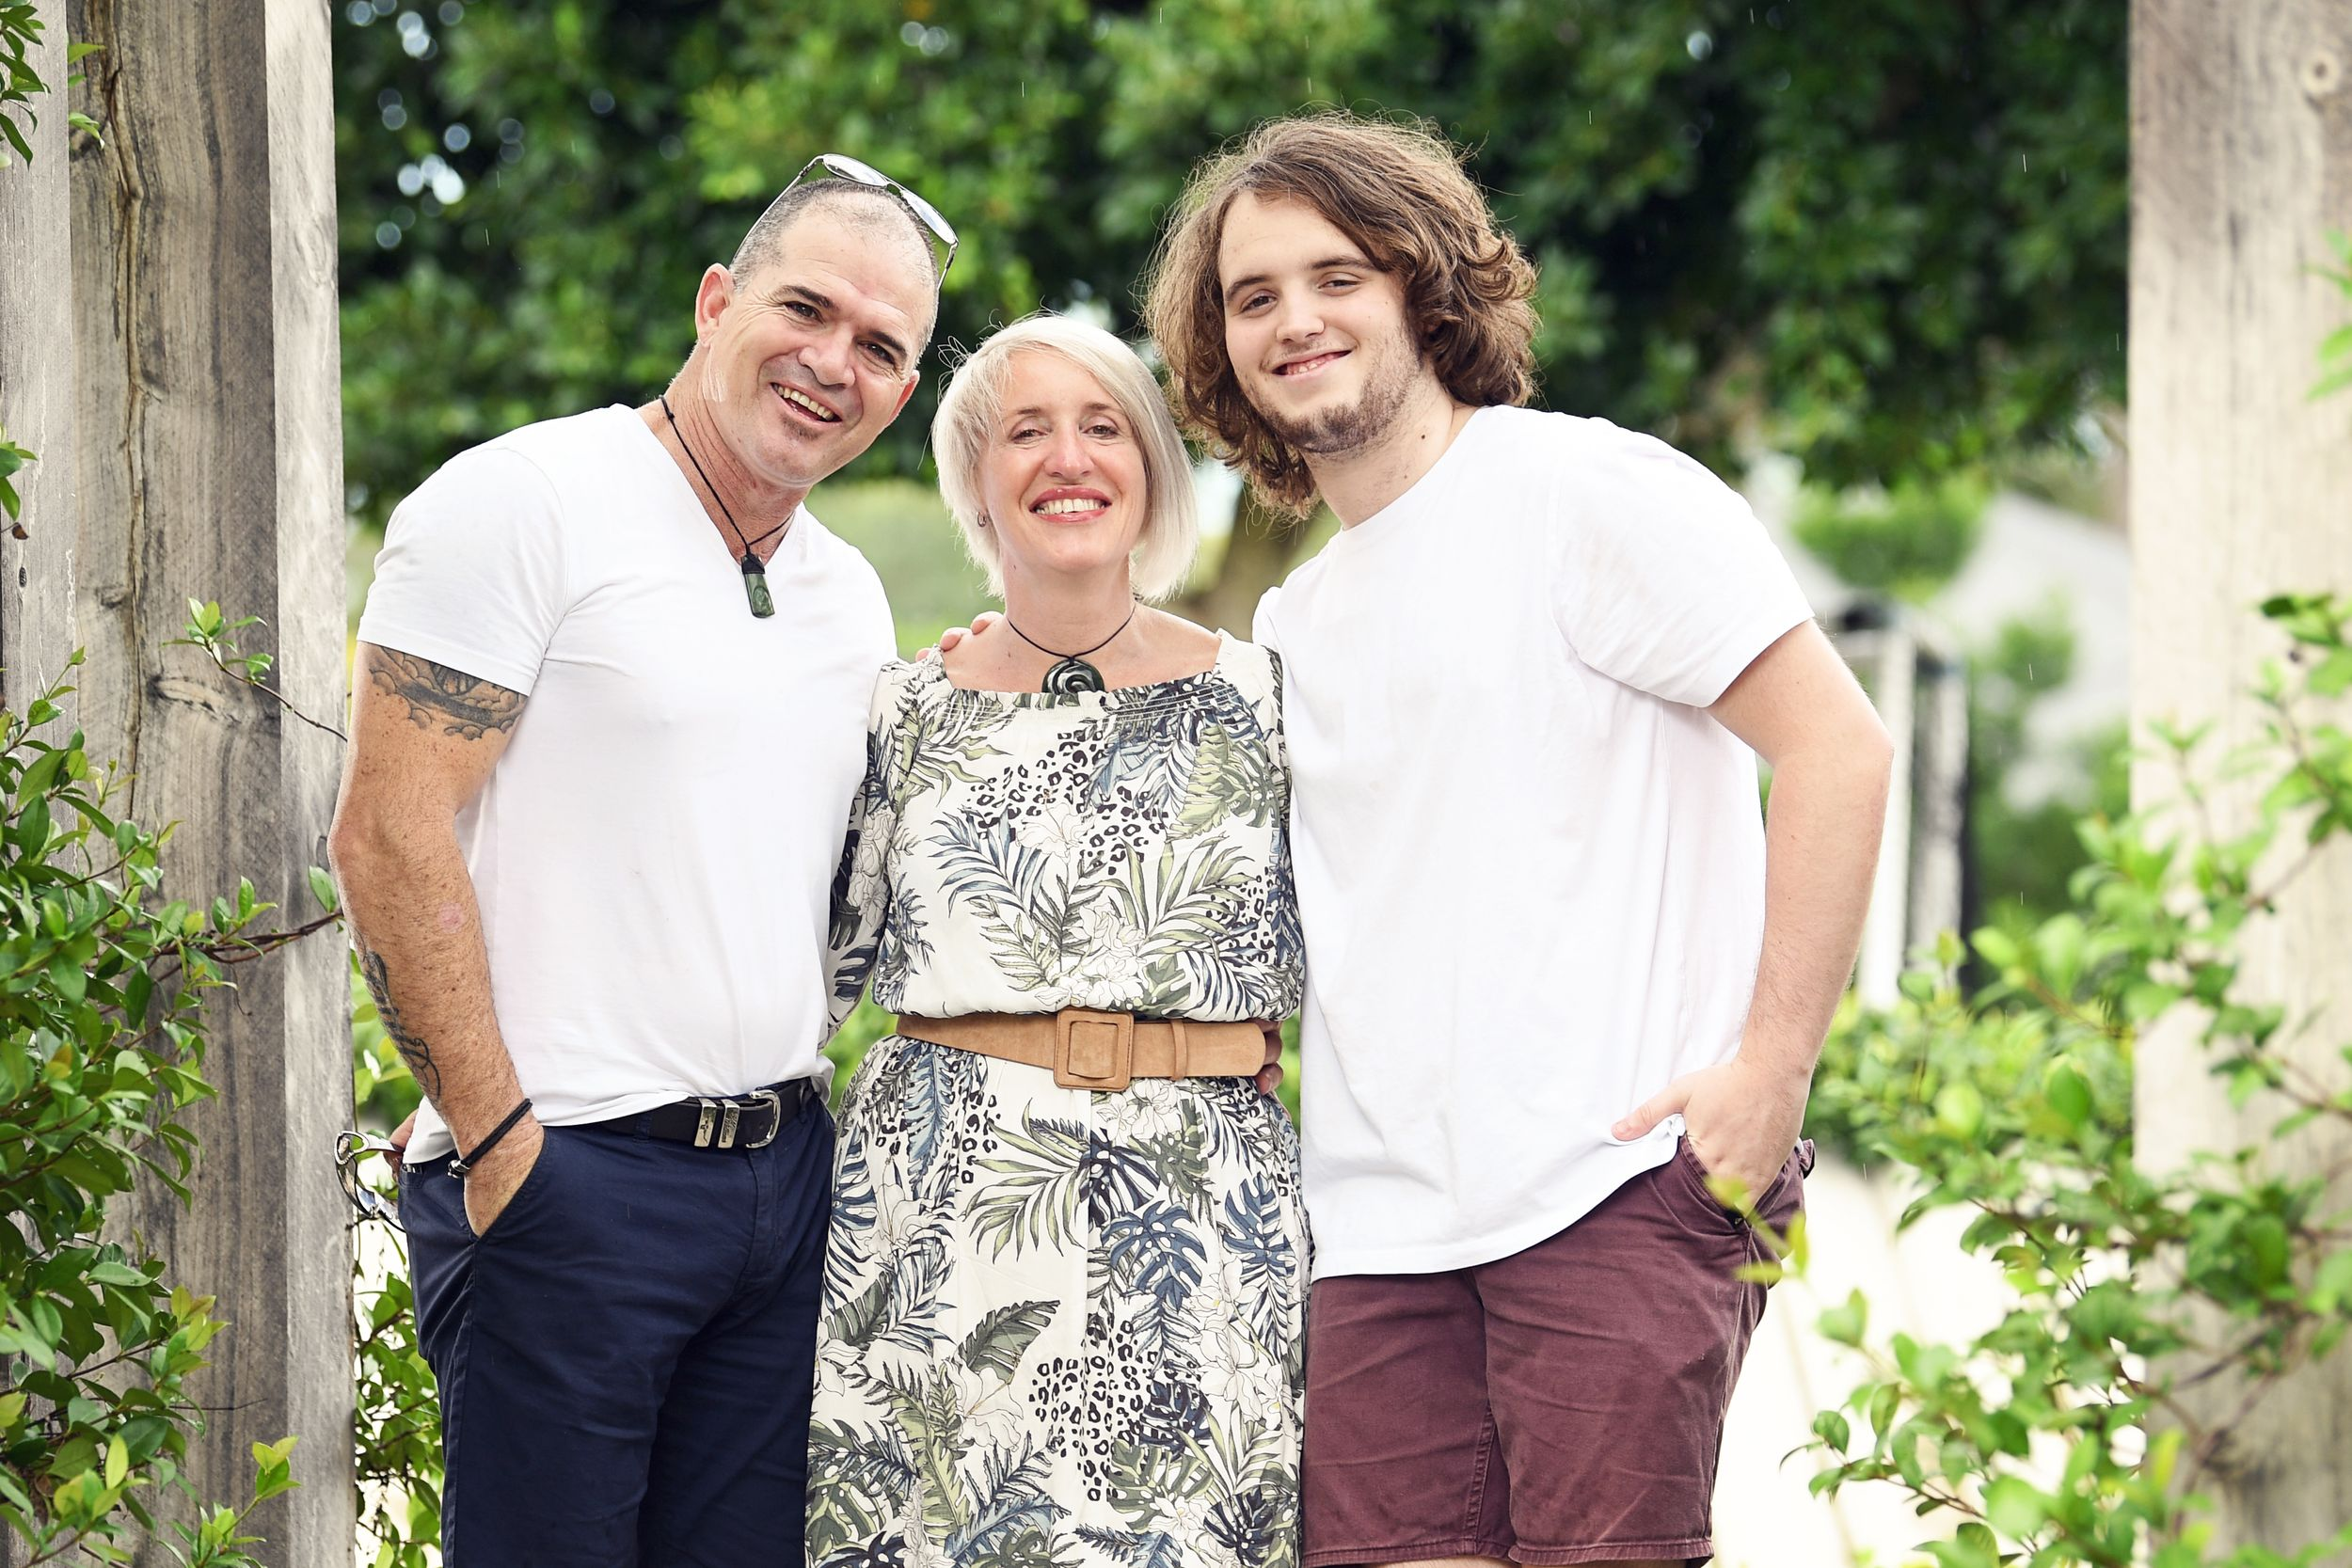 Proud Mum and Dad with son in a garden